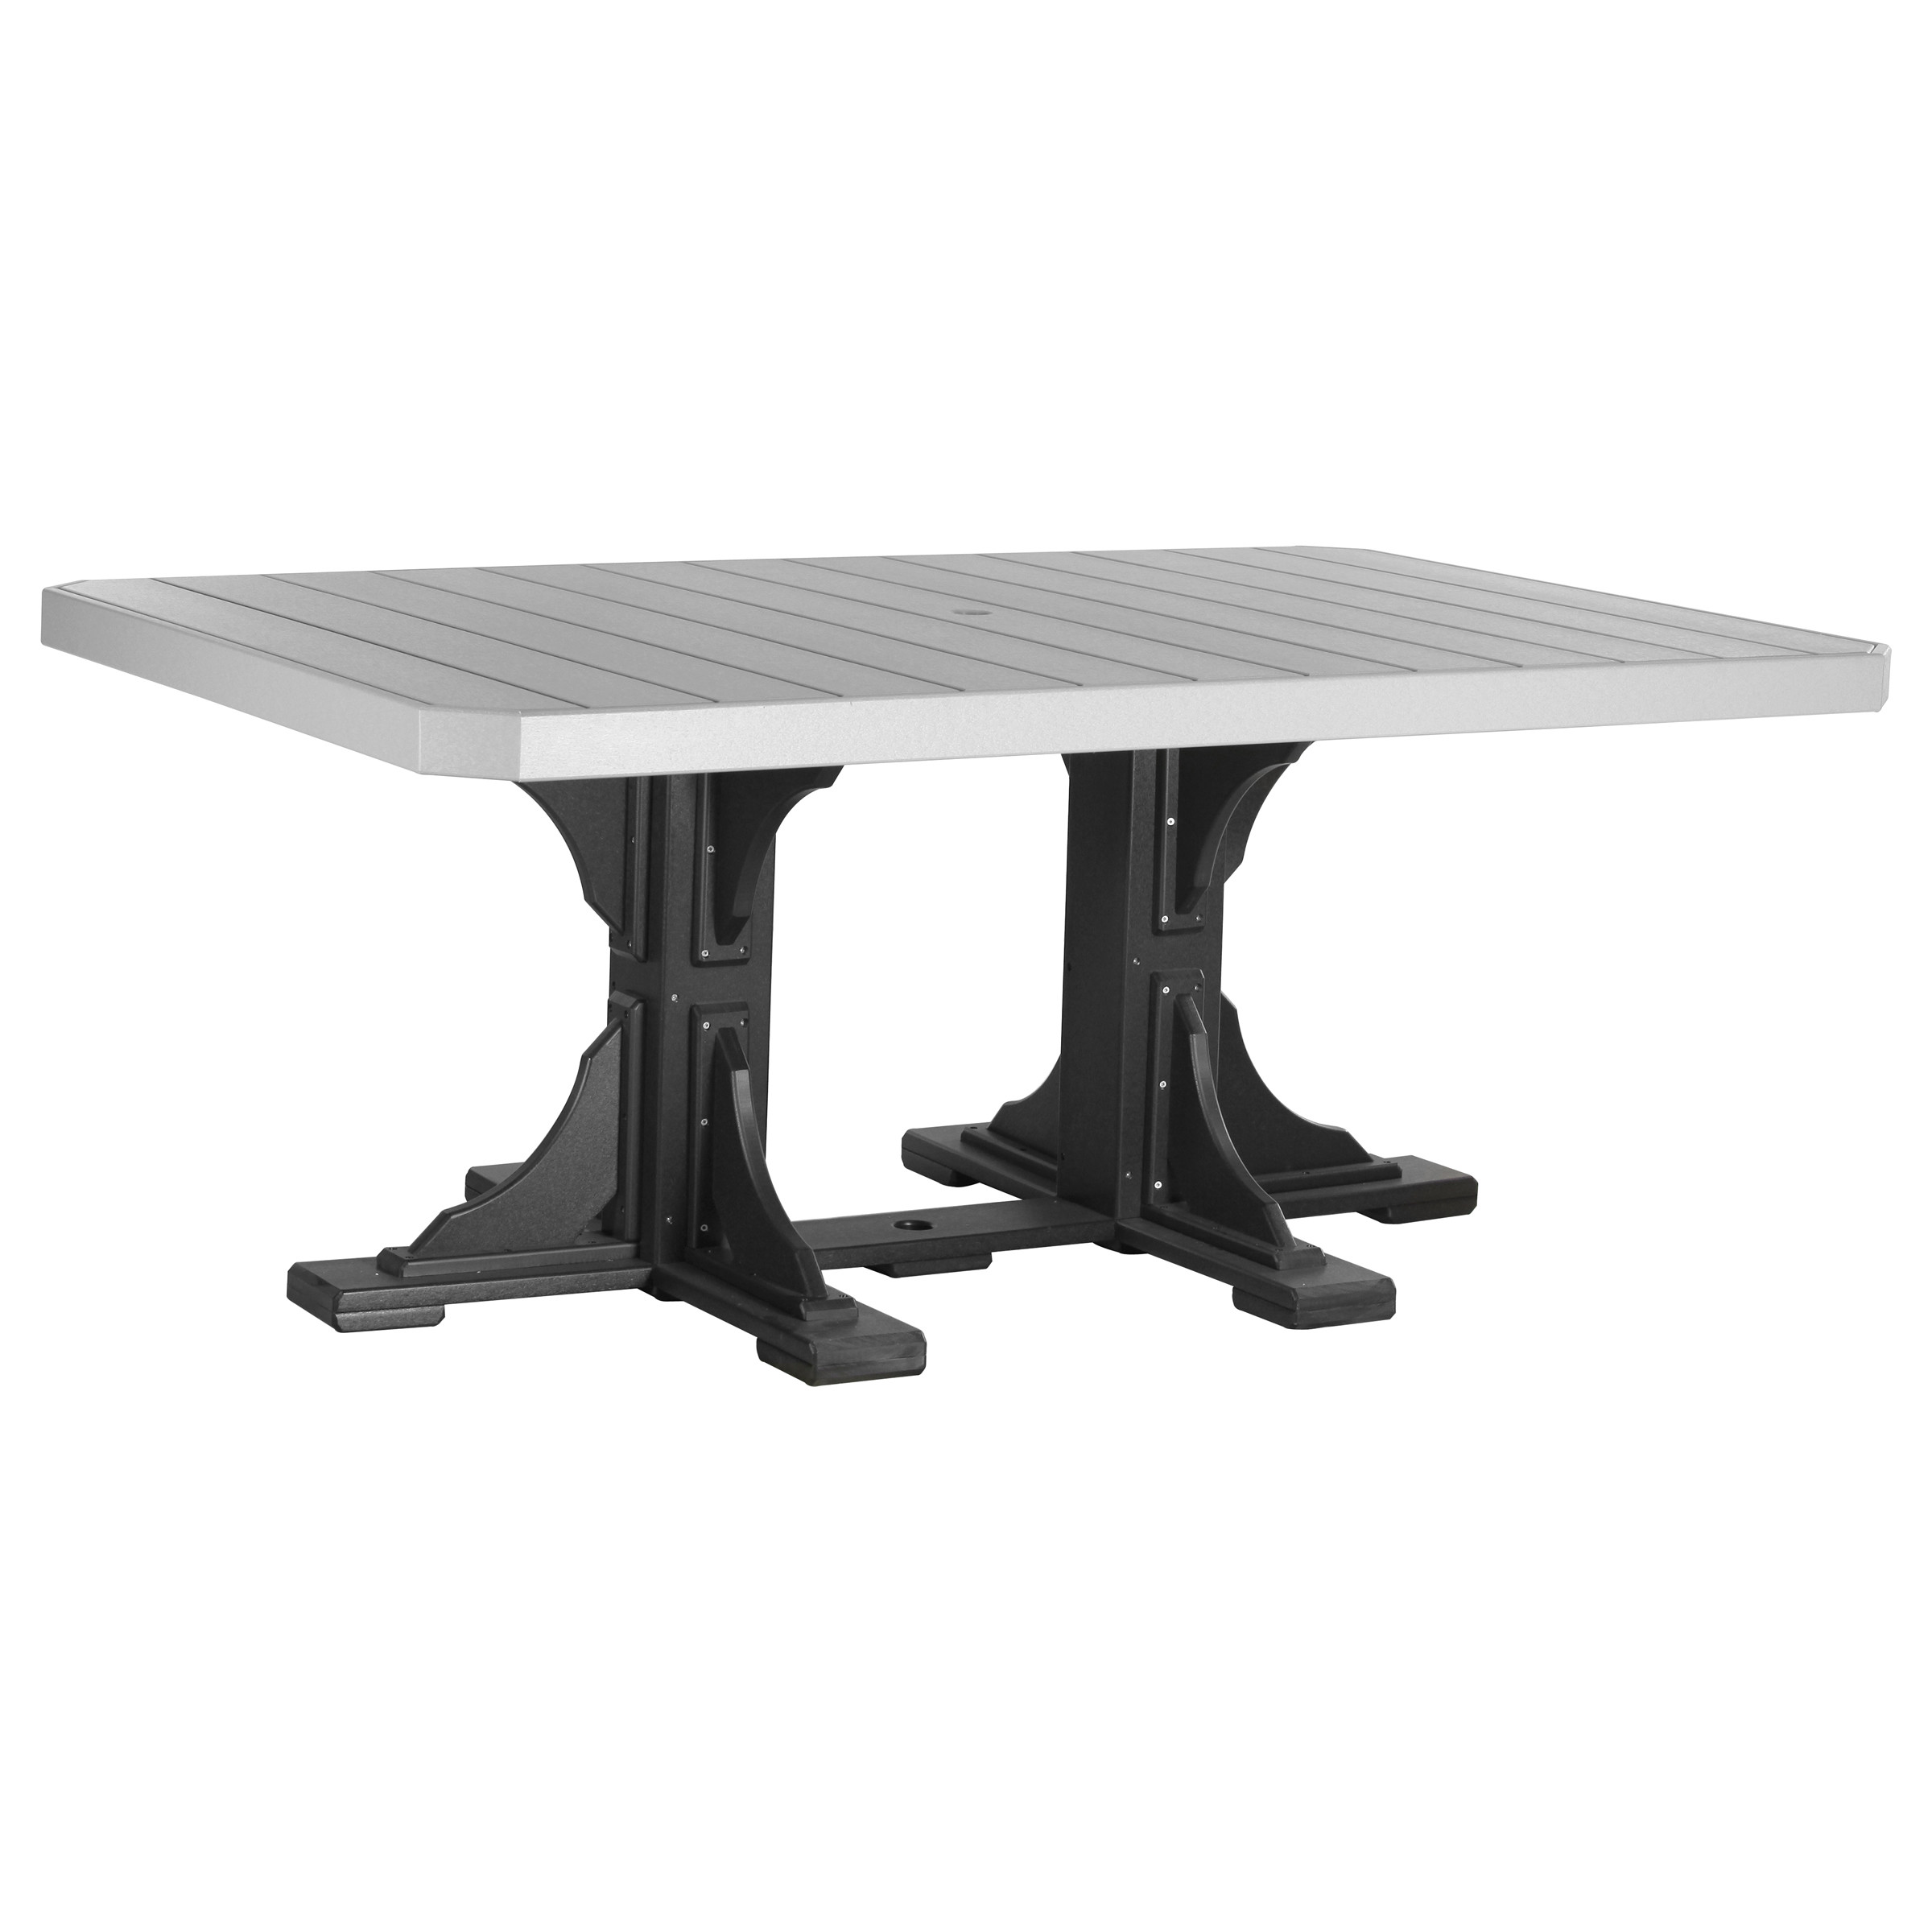 Luxcraft/Crestville 4 x 6 ft. Rectangle Dining Table